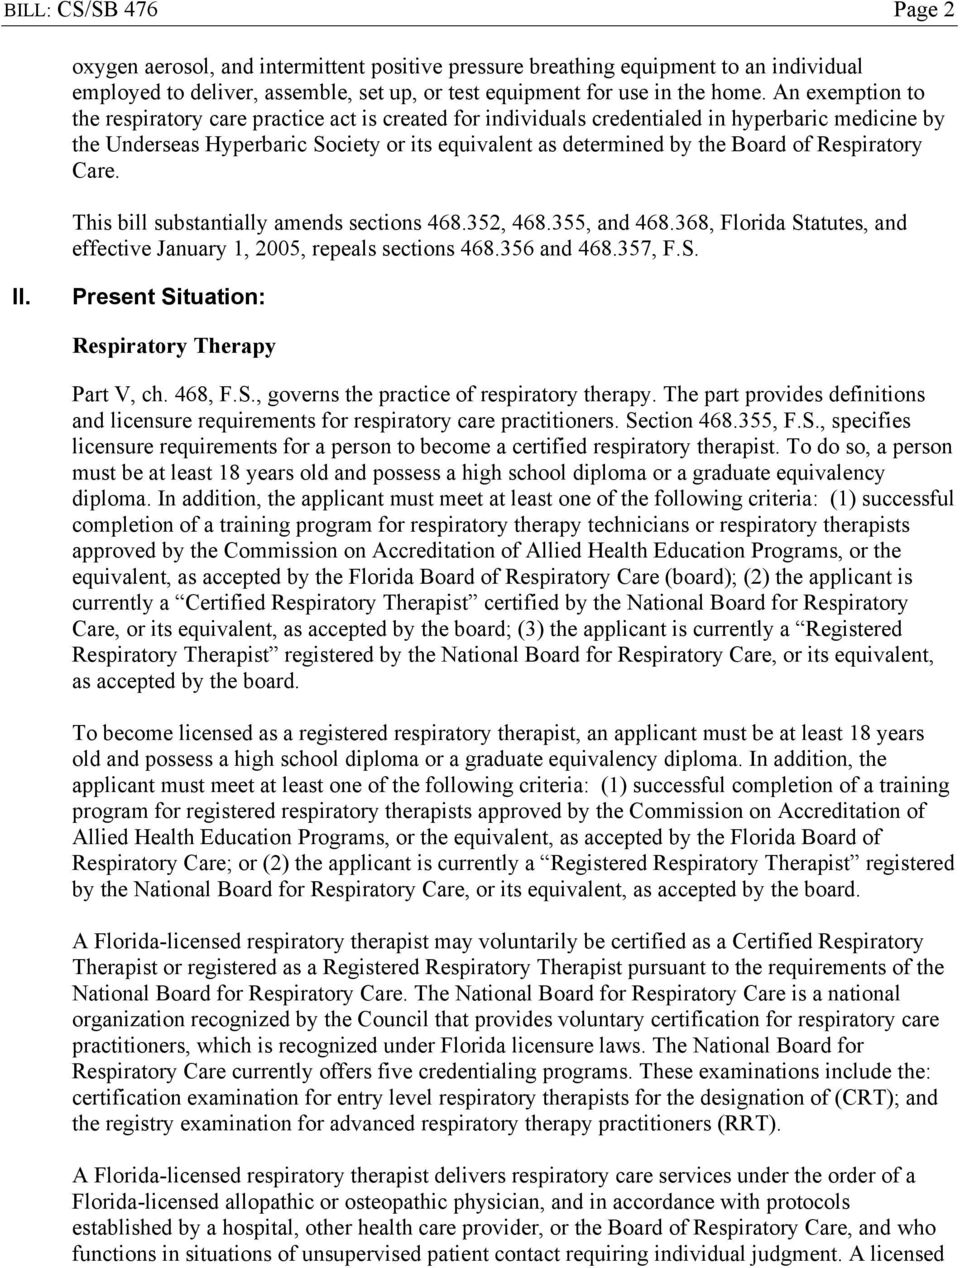 Respiratory Care. This bill substantially amends sections 468.352, 468.355, and 468.368, Florida Statutes, and effective January 1, 2005, repeals sections 468.356 and 468.357, F.S. II.